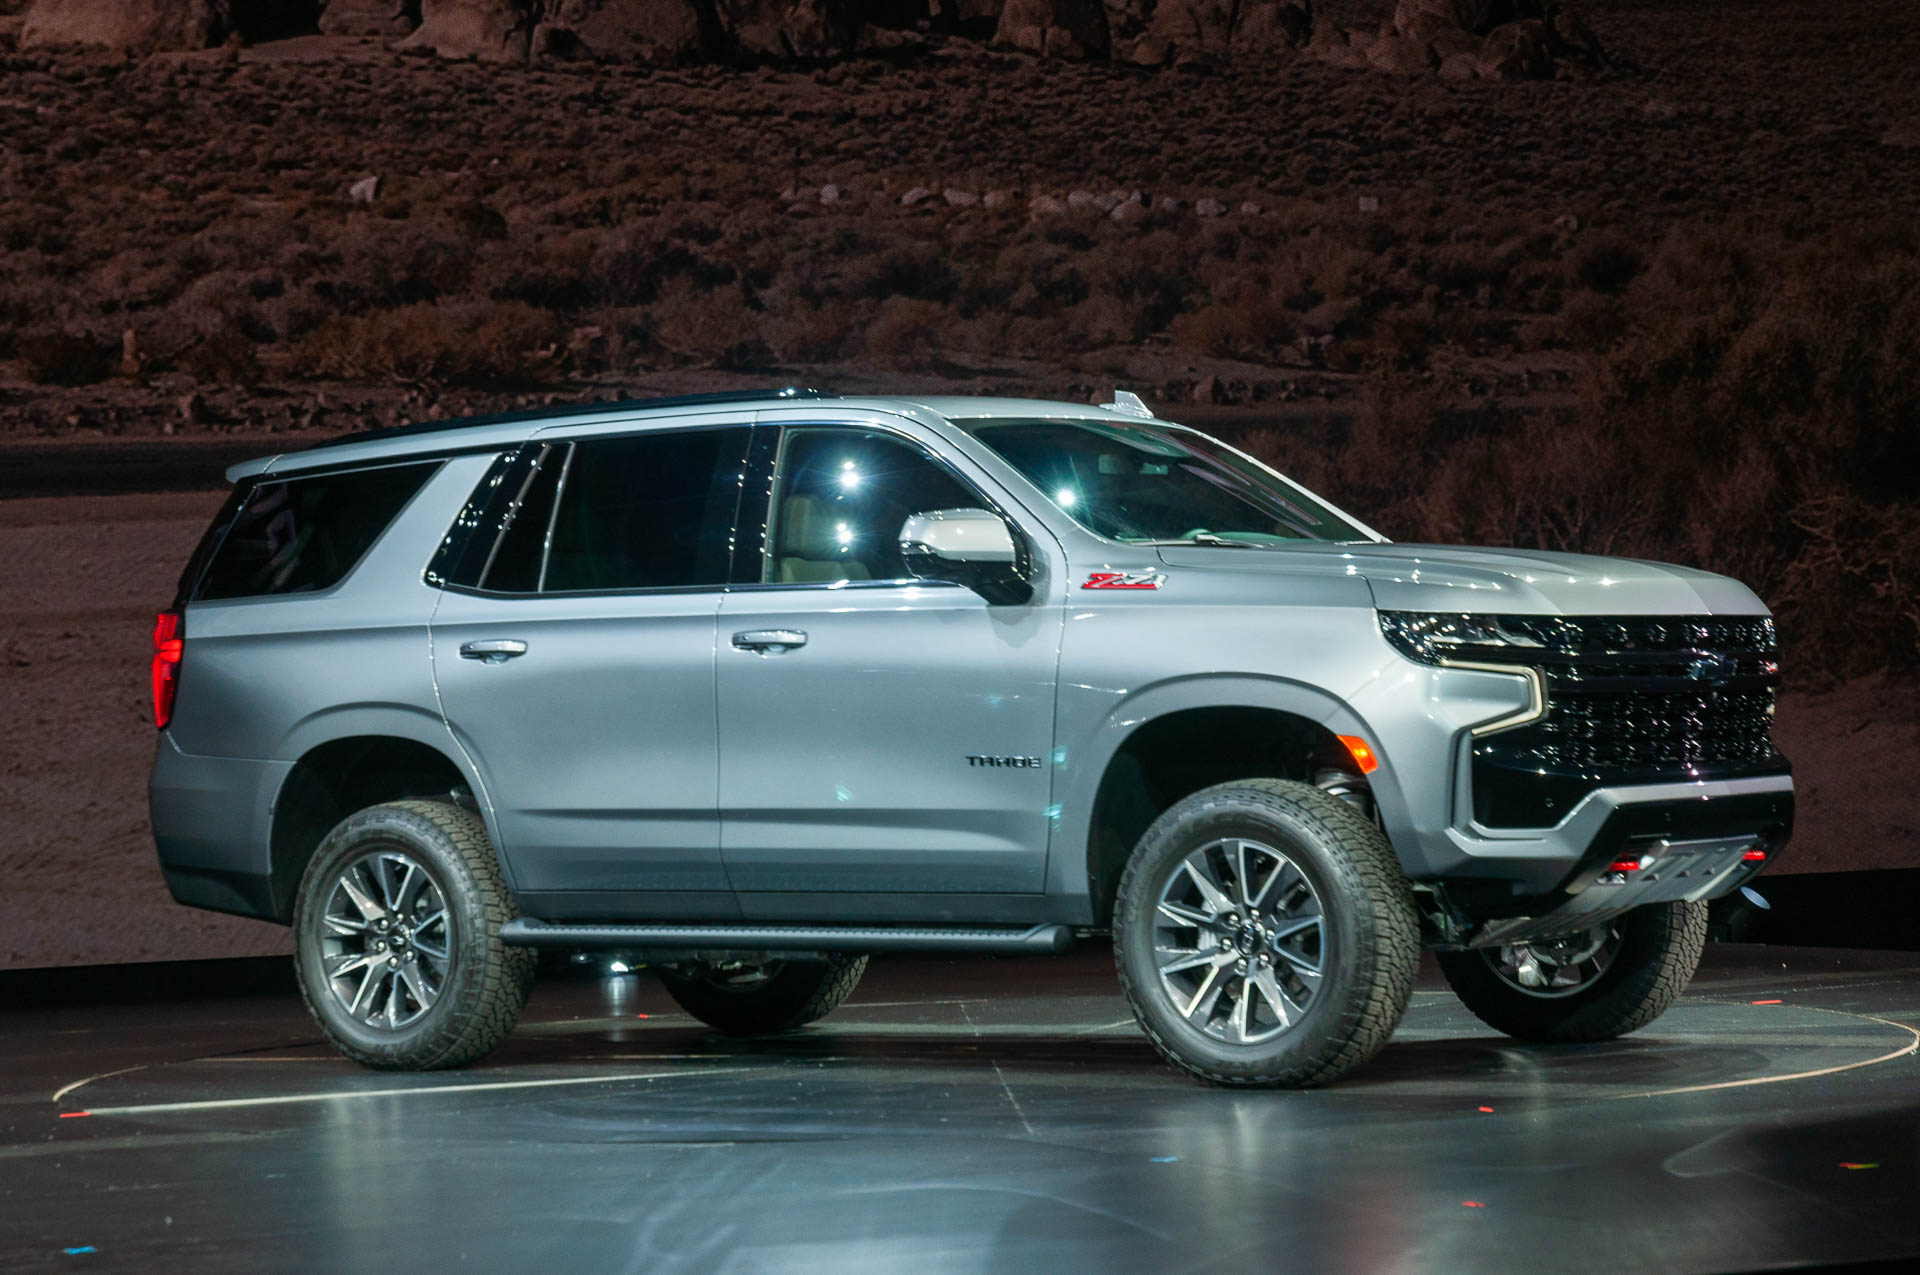 Larger 2021 Chevy Tahoe comes with larger, $50,295 ...